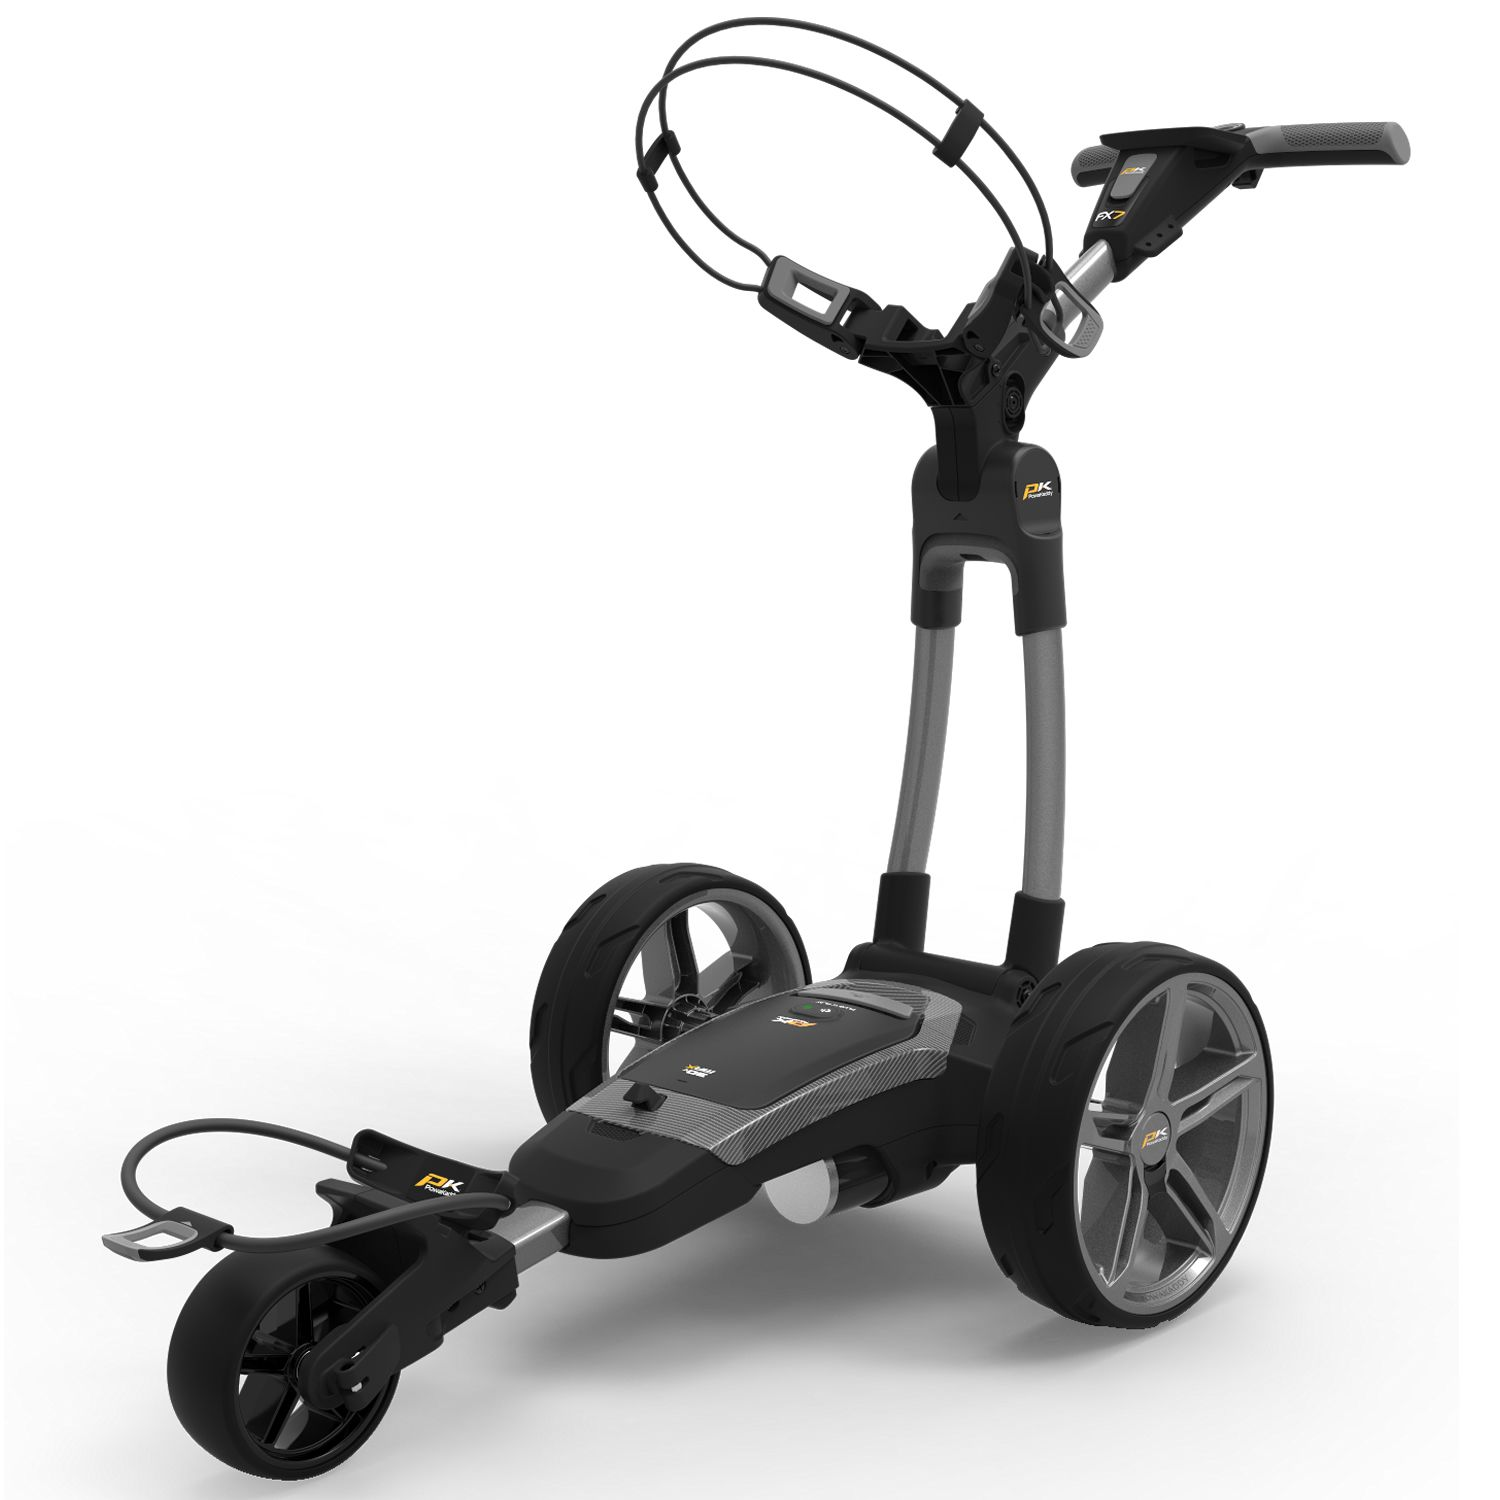 PowaKaddy 2020 FX7 EBS Electric Golf Trolley